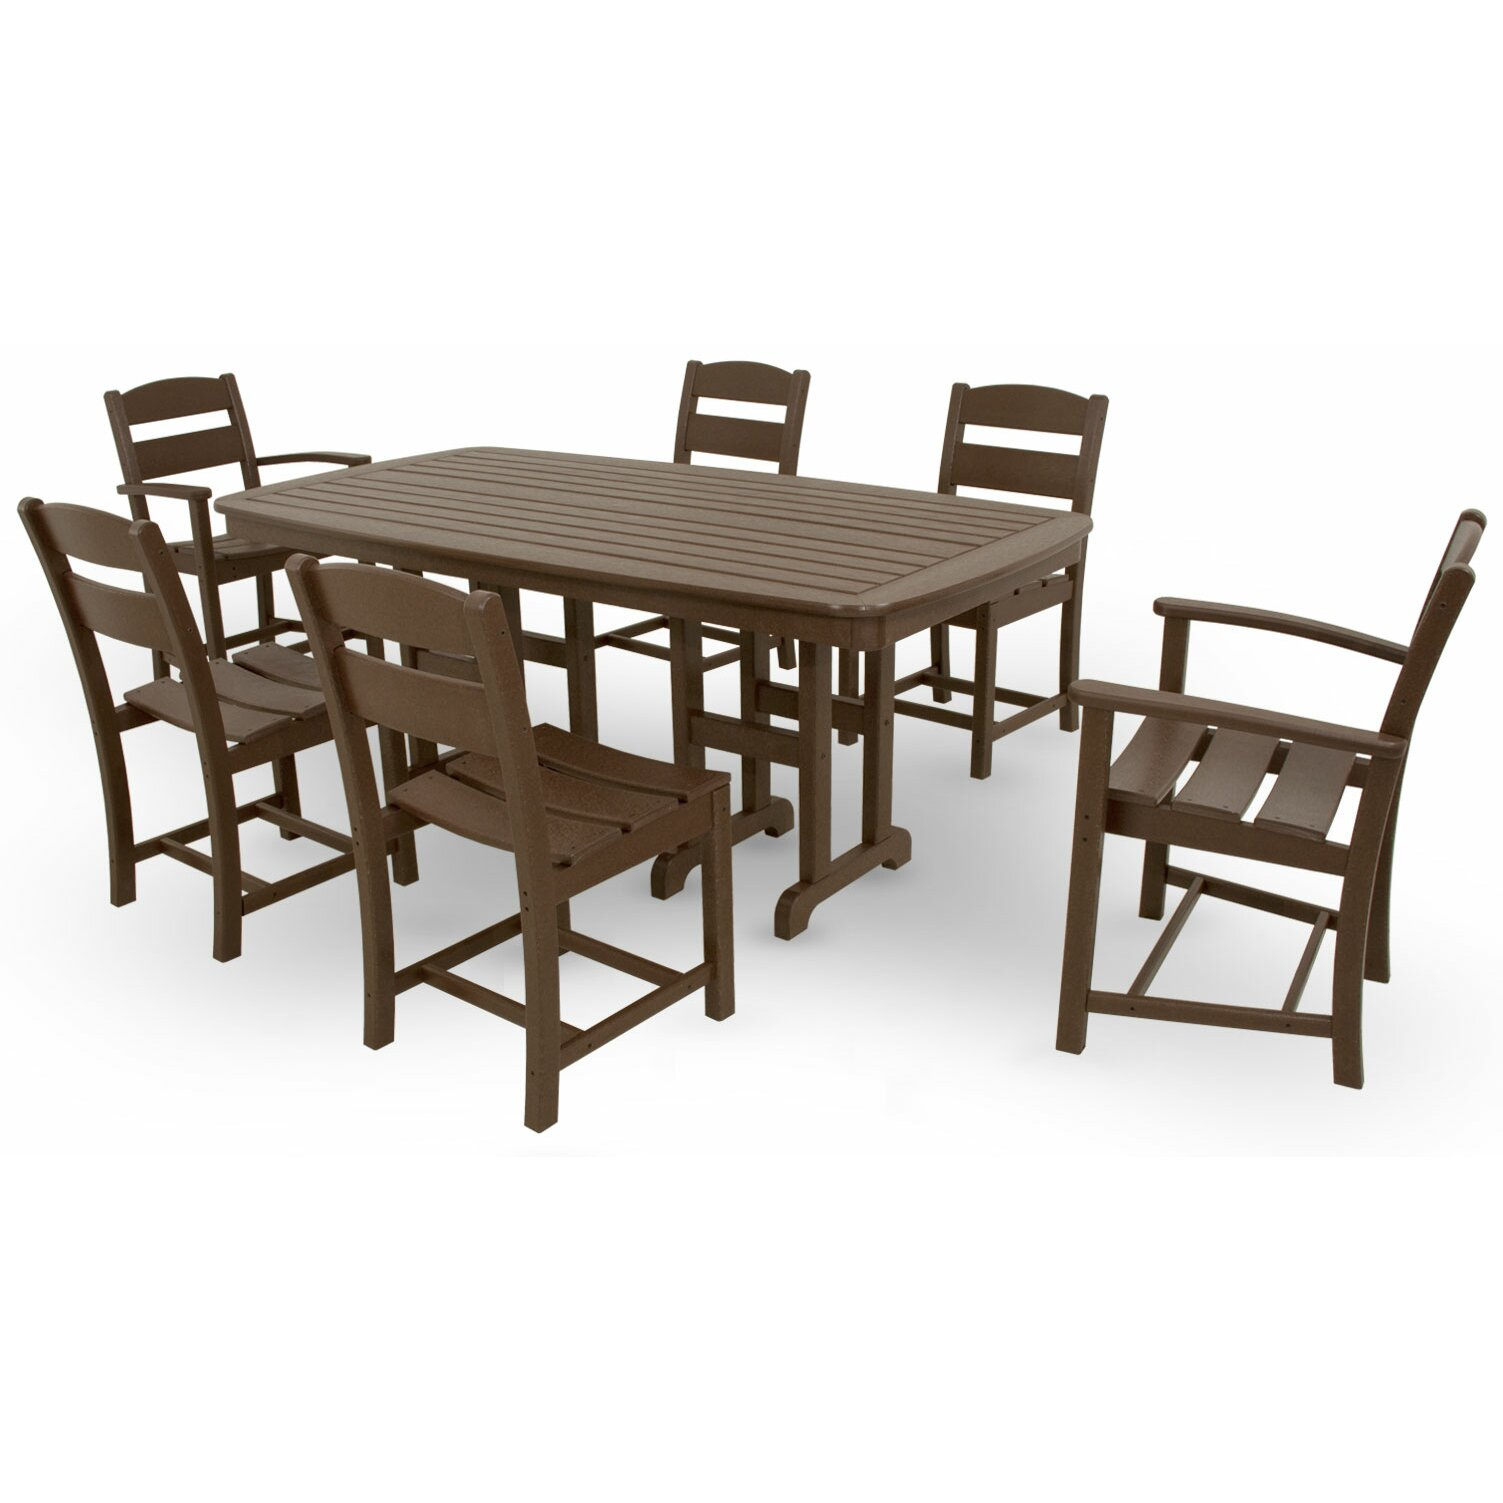 Ivy terrace ivy terrace 7 piece dining set reviews wayfair for Outdoor furniture 7 piece